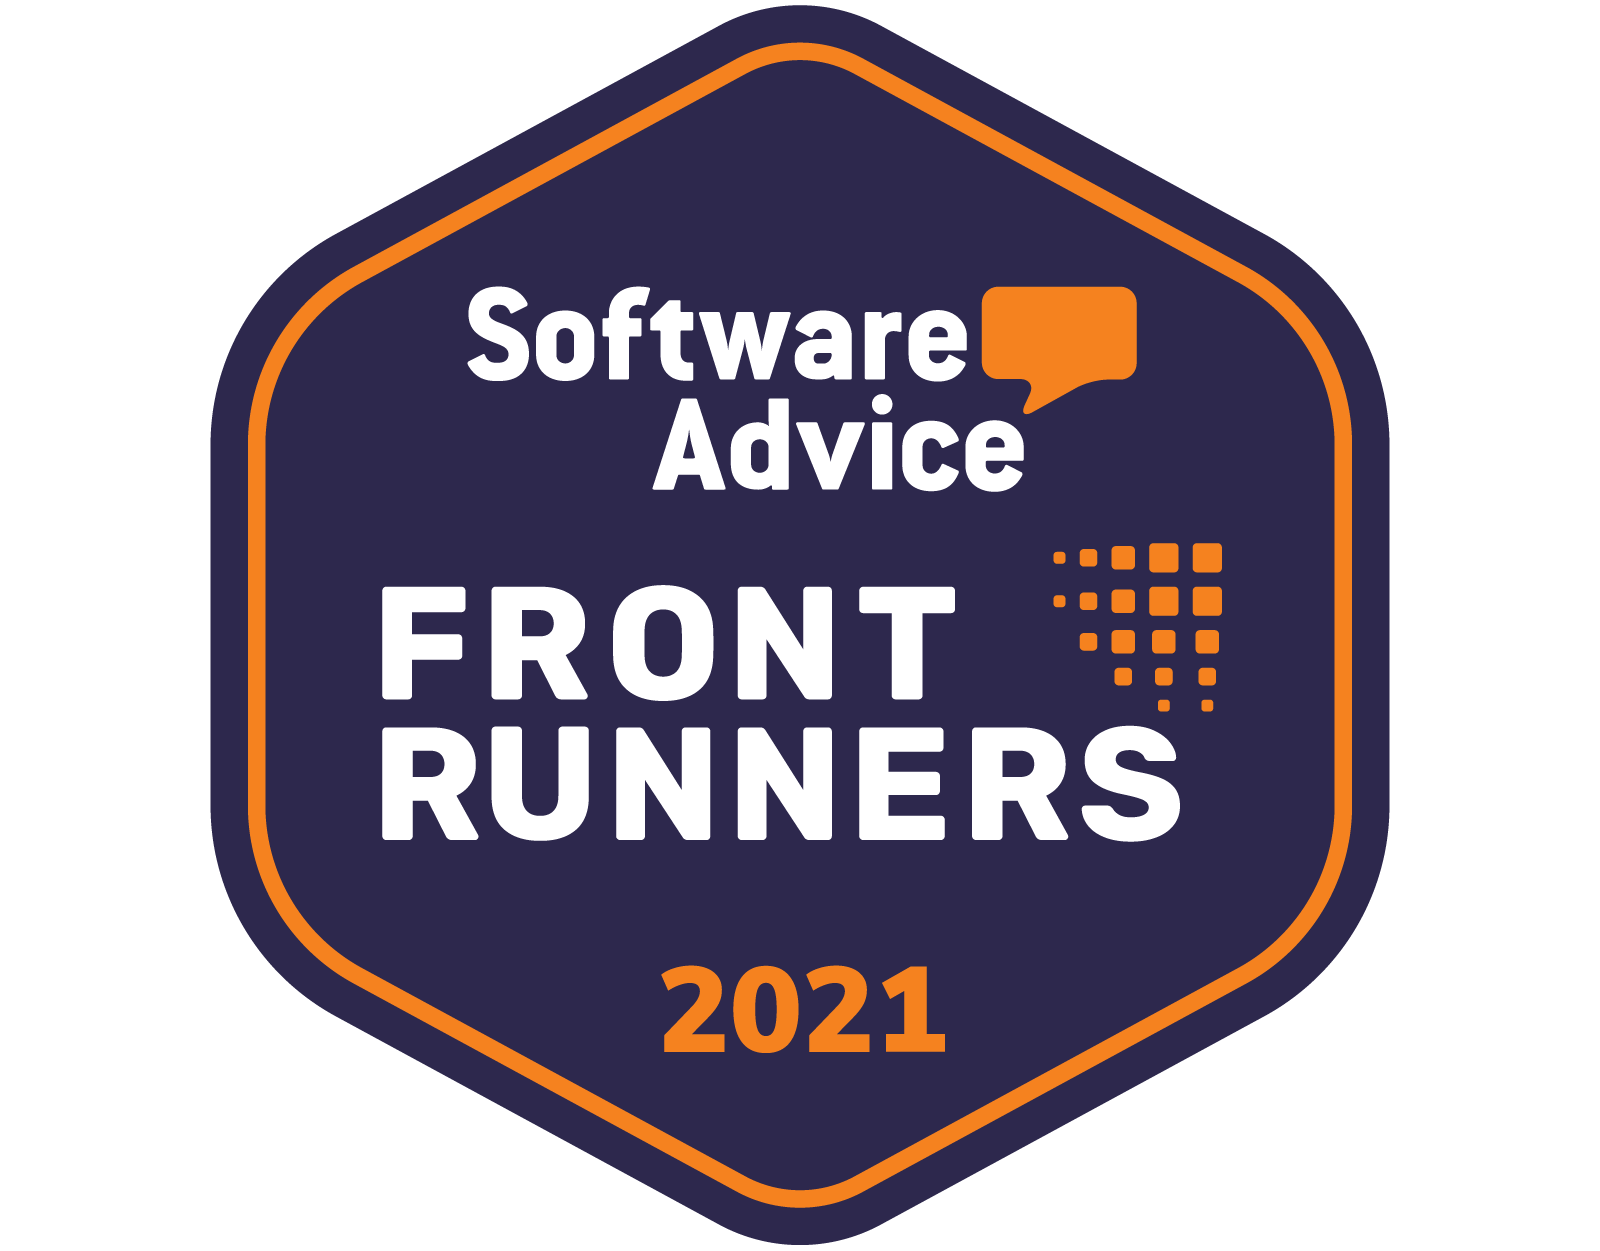 Software Advice Frontrunners for Project Management Jan-21